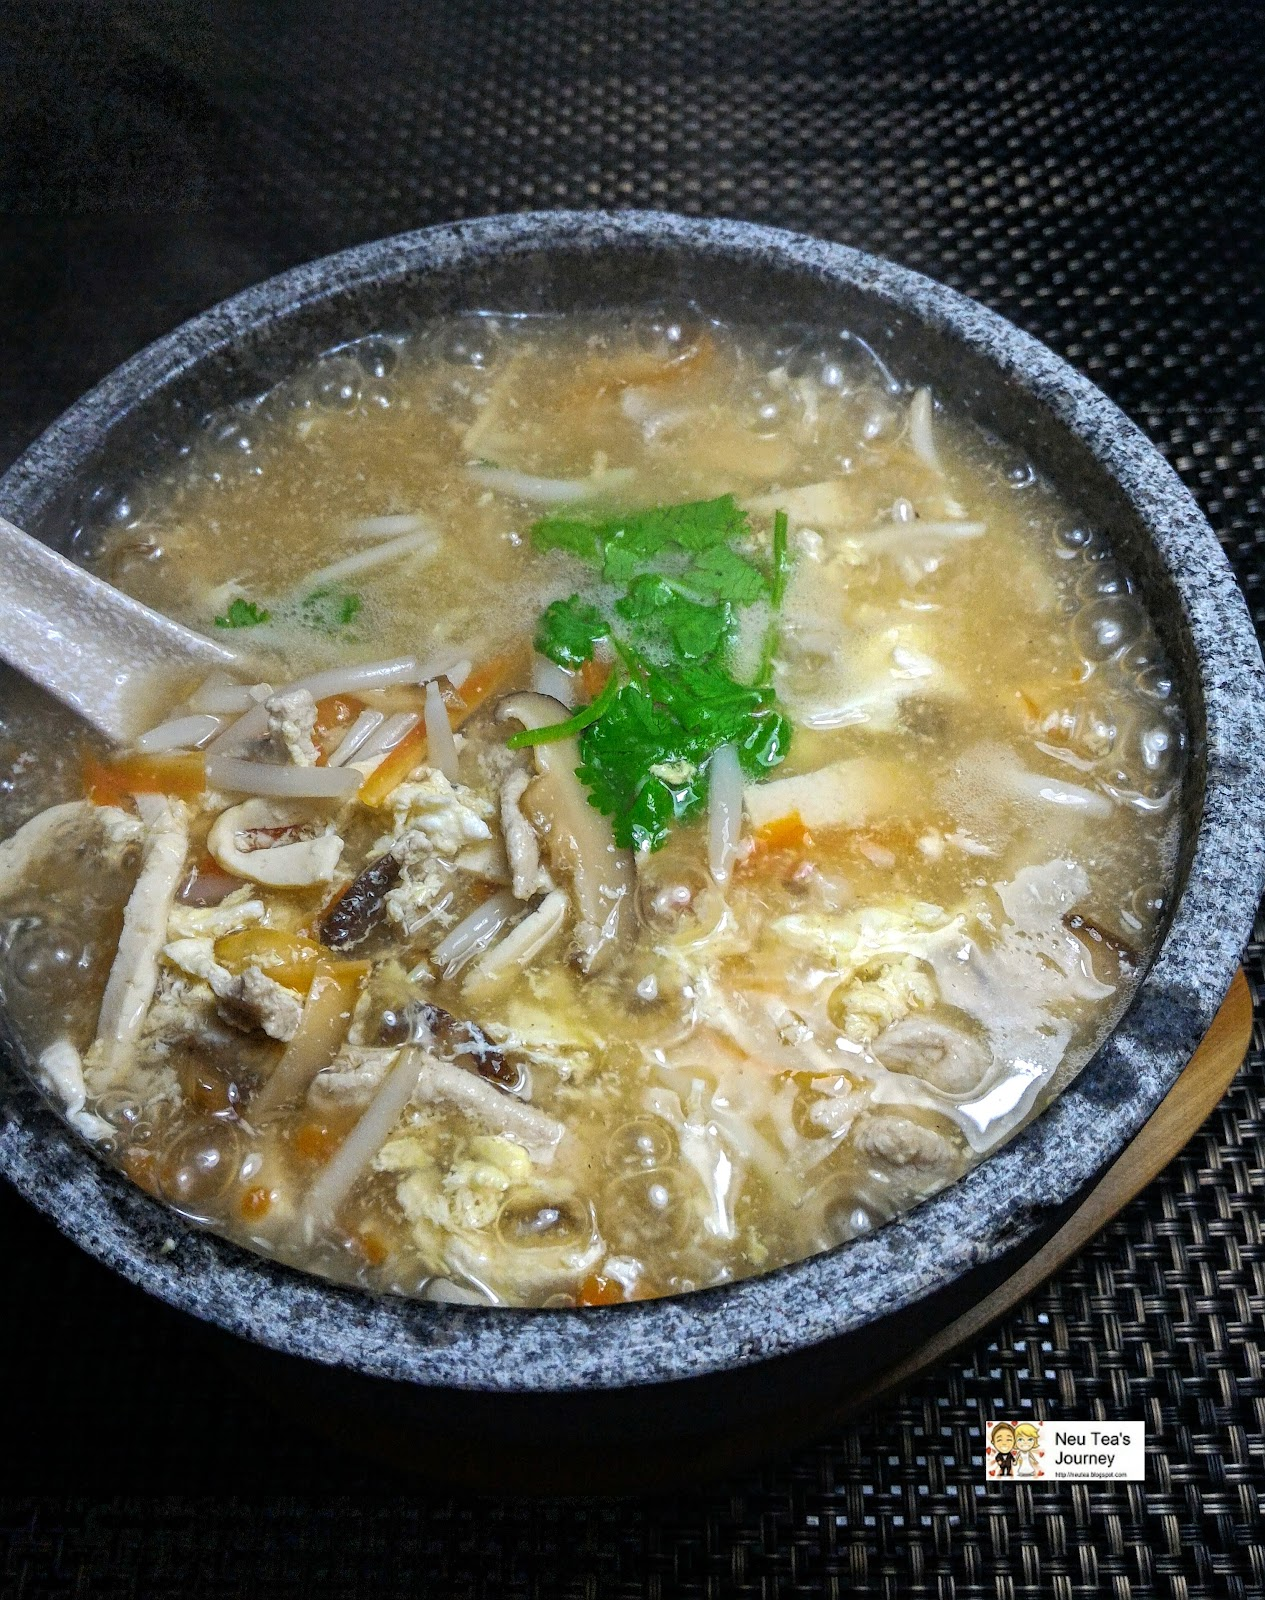 Hot & Sour Soup 酸辣汤 at Private Dining